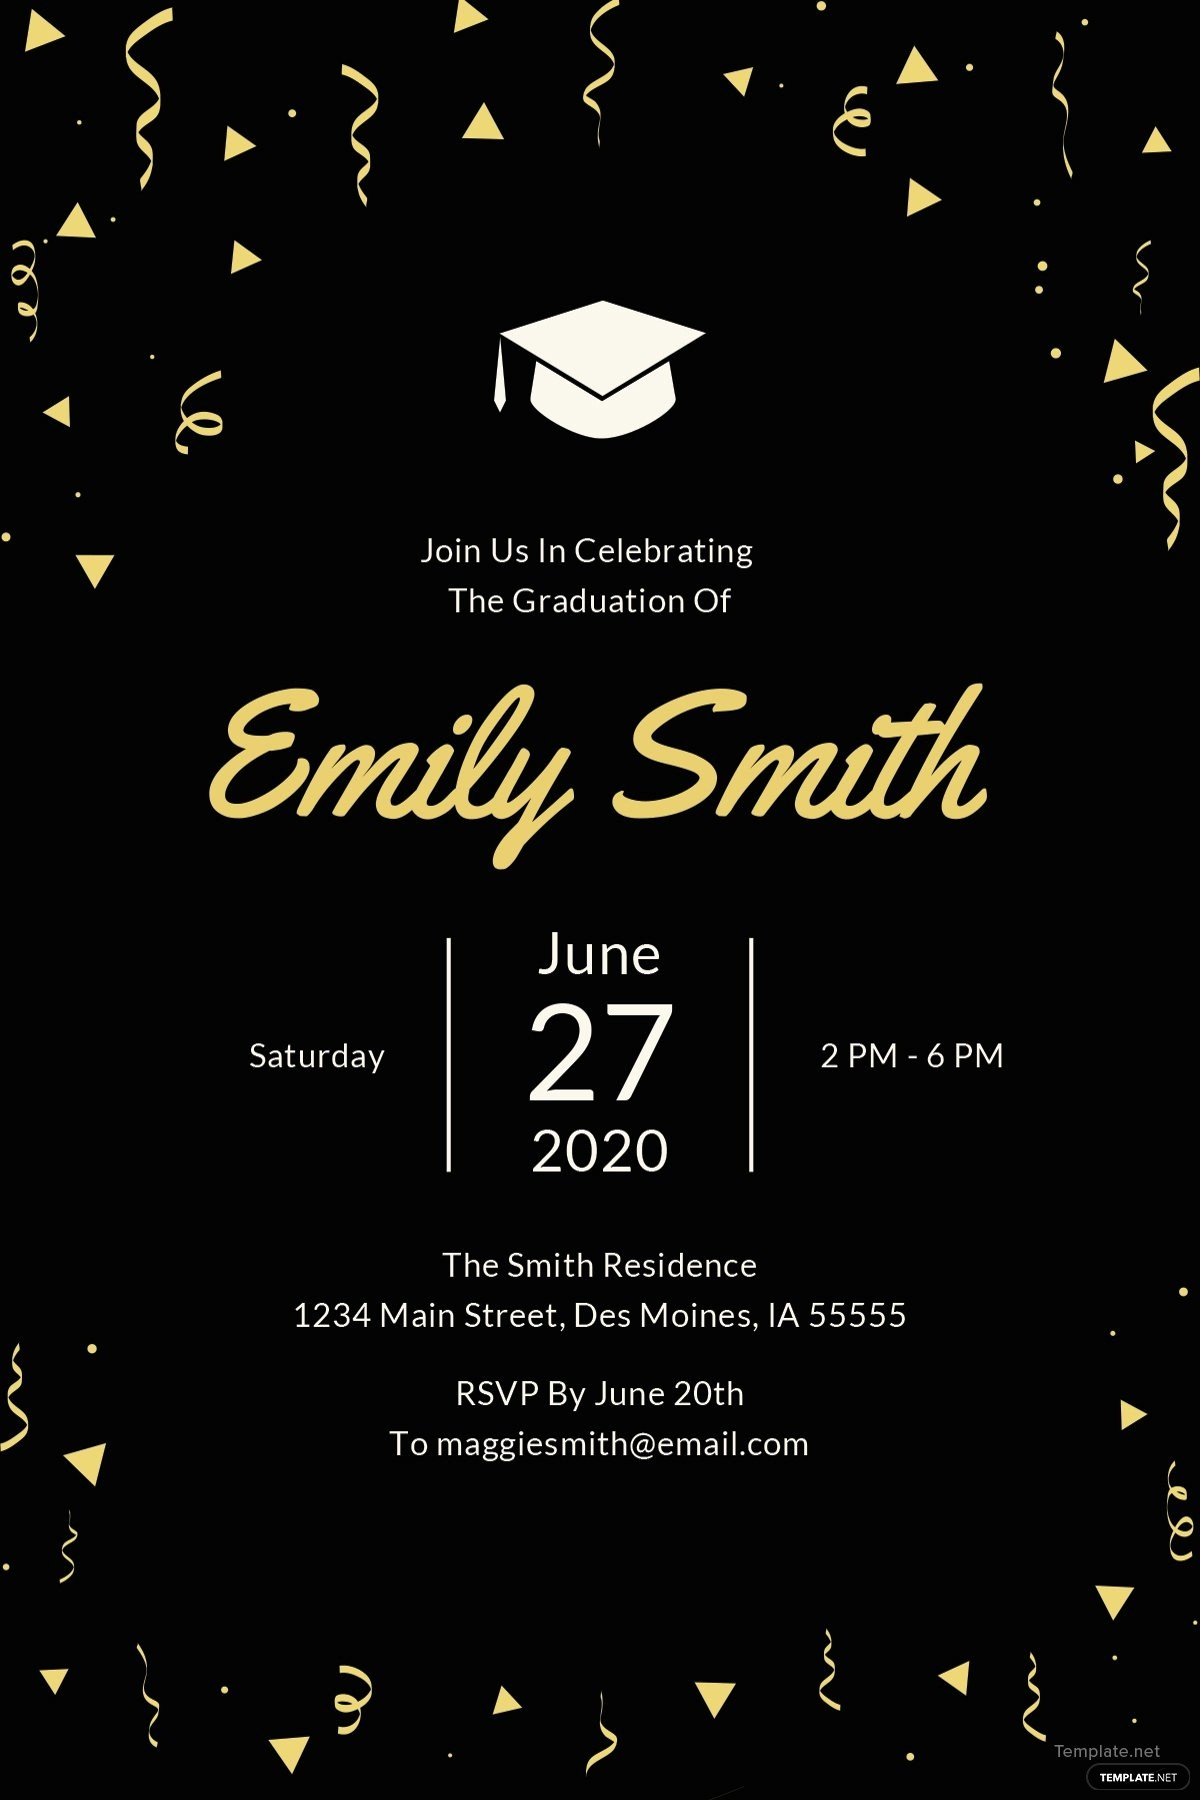 Free Graduation Party Invitation Template New Free Graduation Invitation Template In Microsoft Word